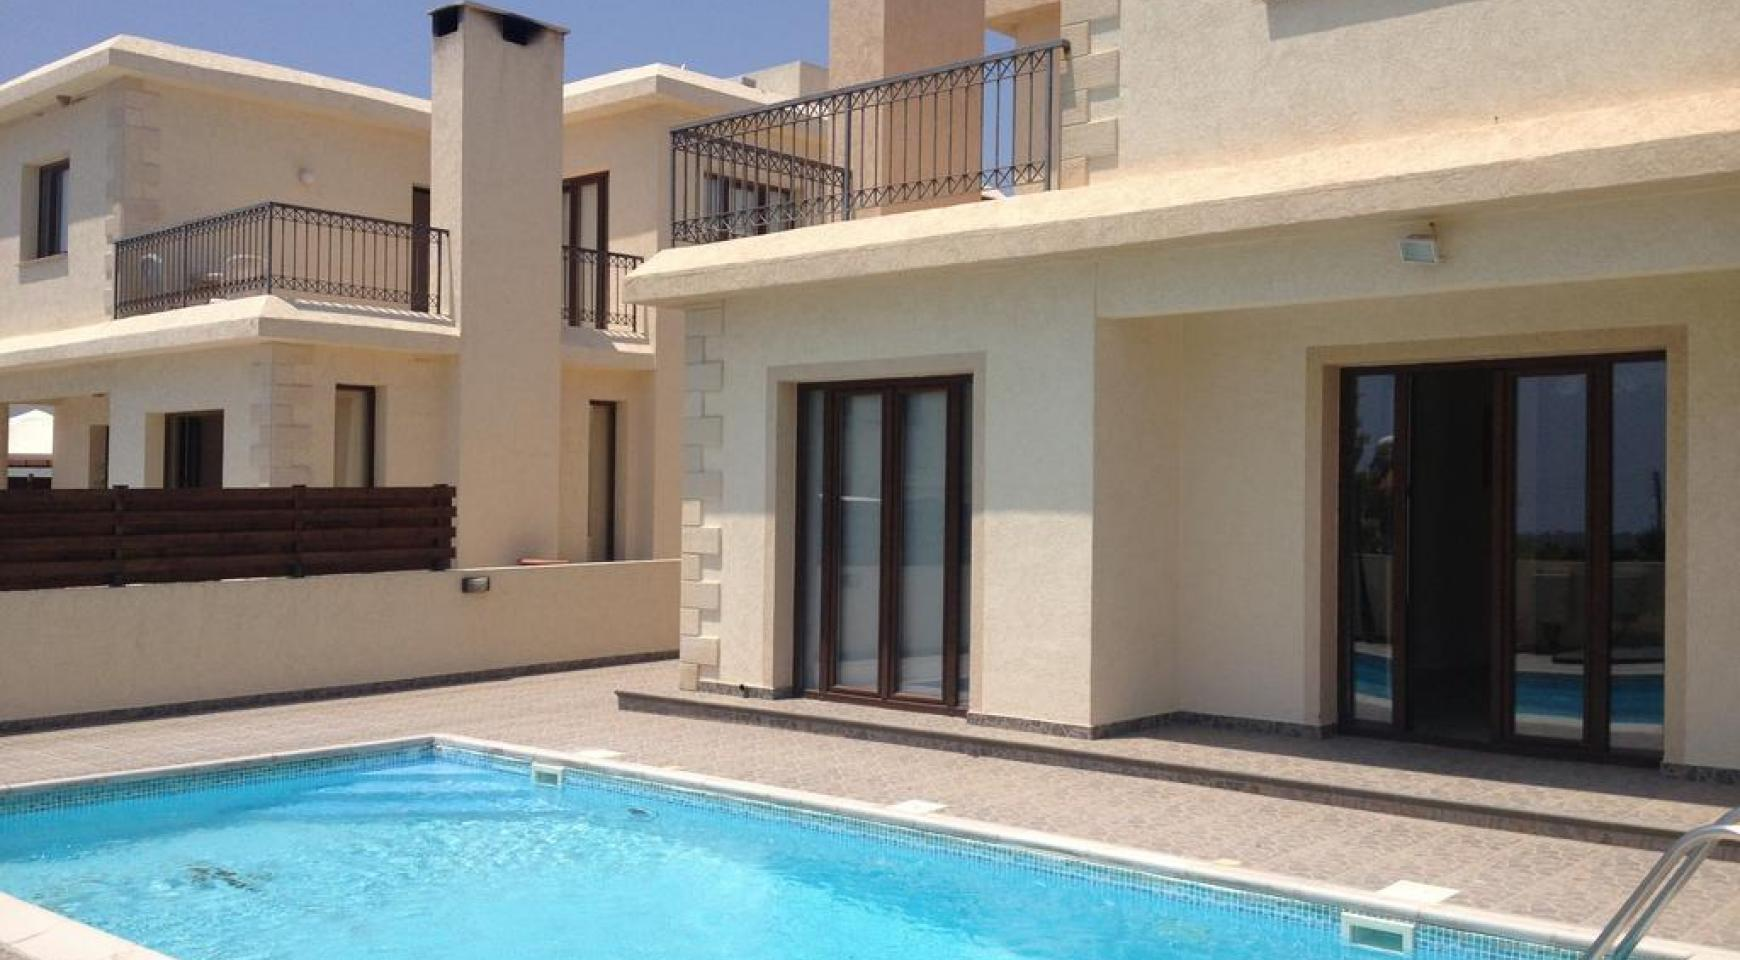 4 Bedroom Villa with Sea and Mountain Views in Pissouri Village - 2